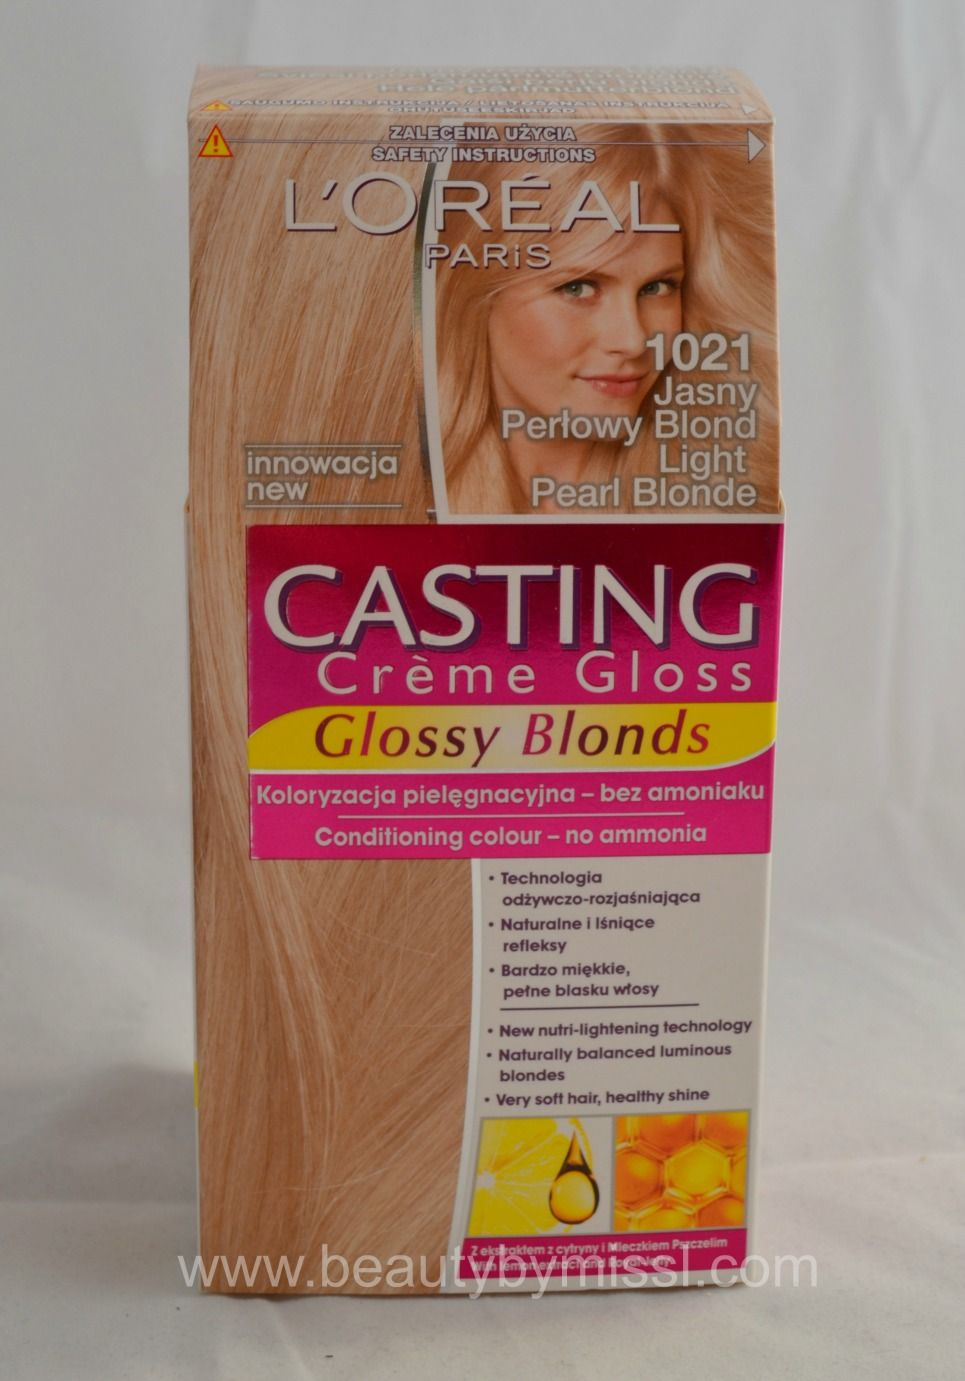 Dyed My Hair Last Night Beauty By Miss L Loreal Casting Creme Gloss Loreal Dye My Hair